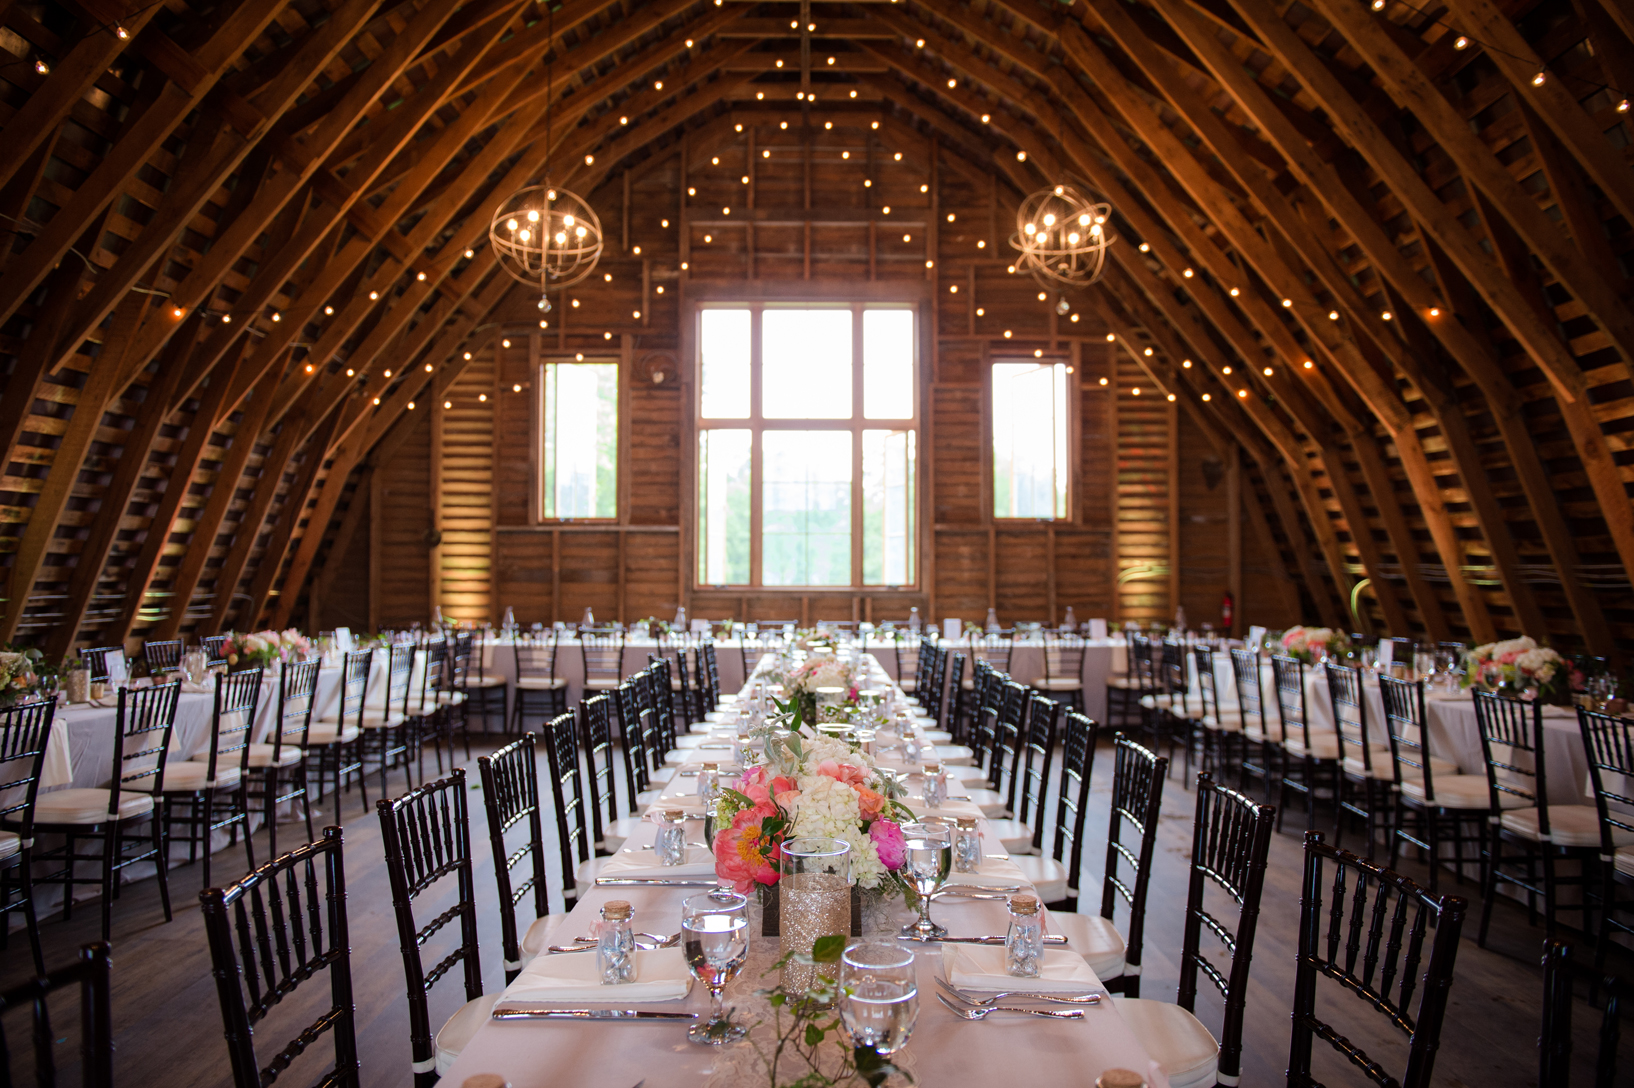 Northern Virginia Barn Wedding Venue